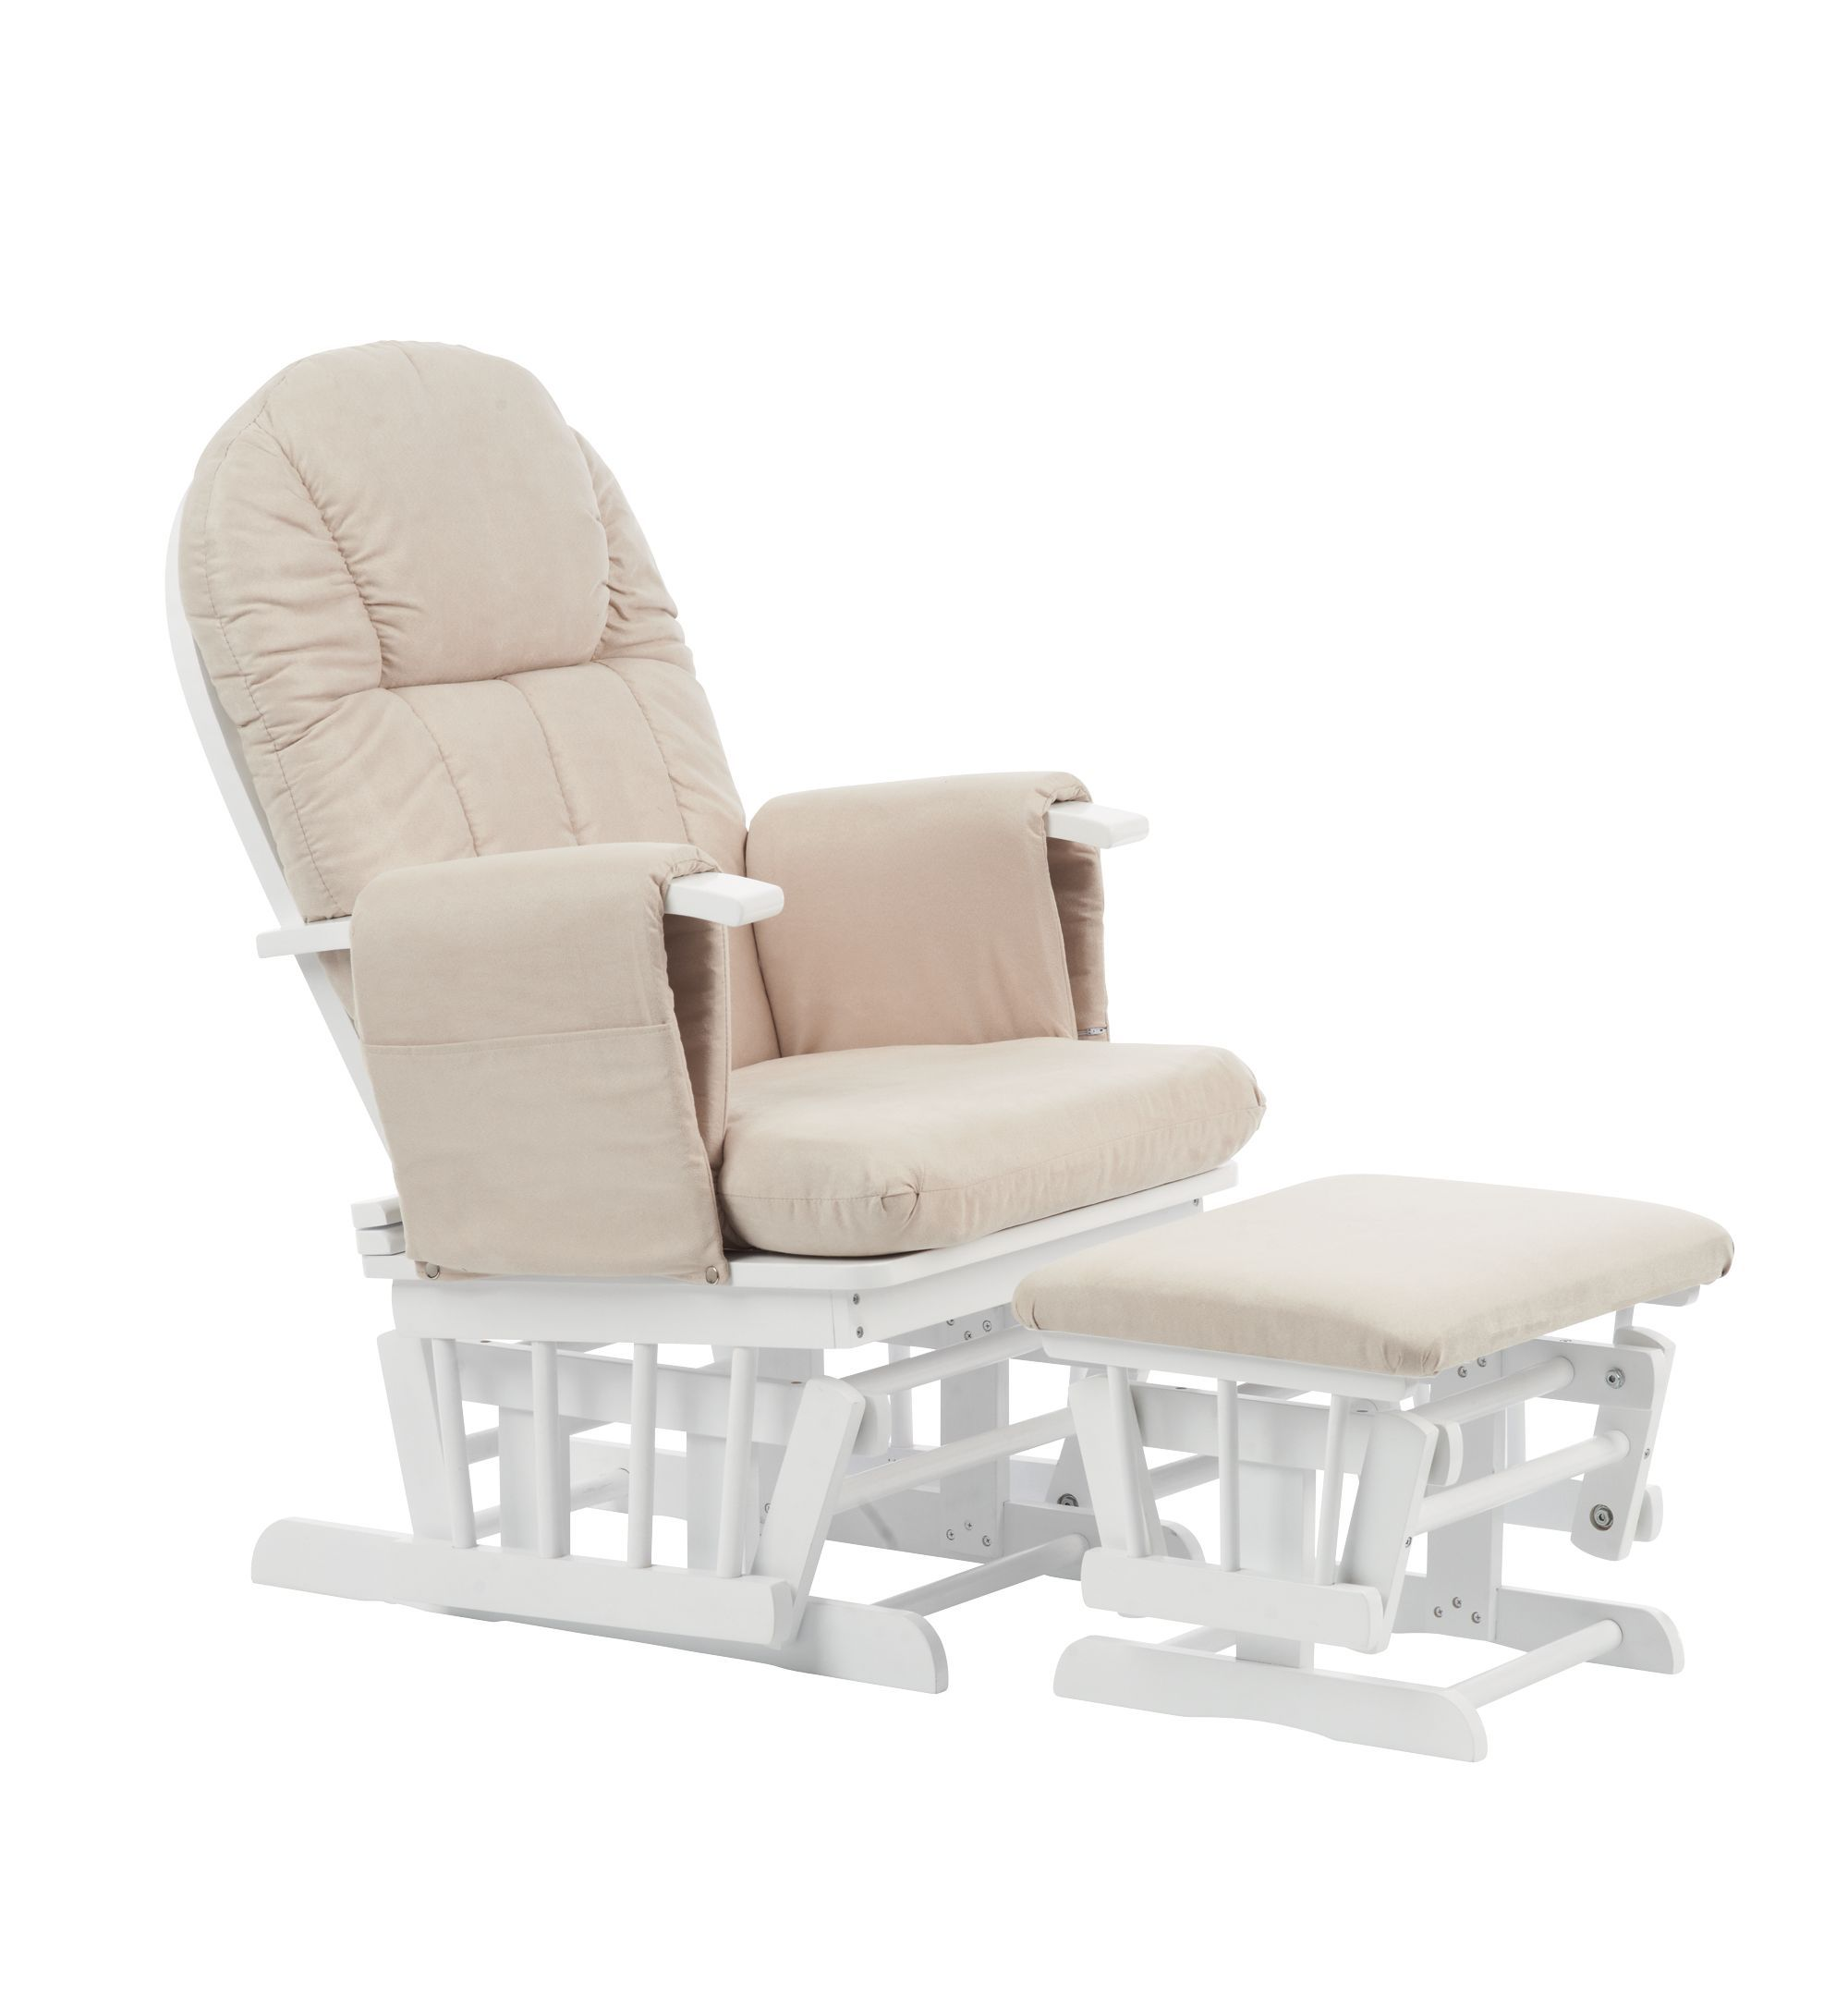 Owl High Chair Mothercare Big And Tall Outdoor Lounge Chairs Reclining Glider White Baby Taylor